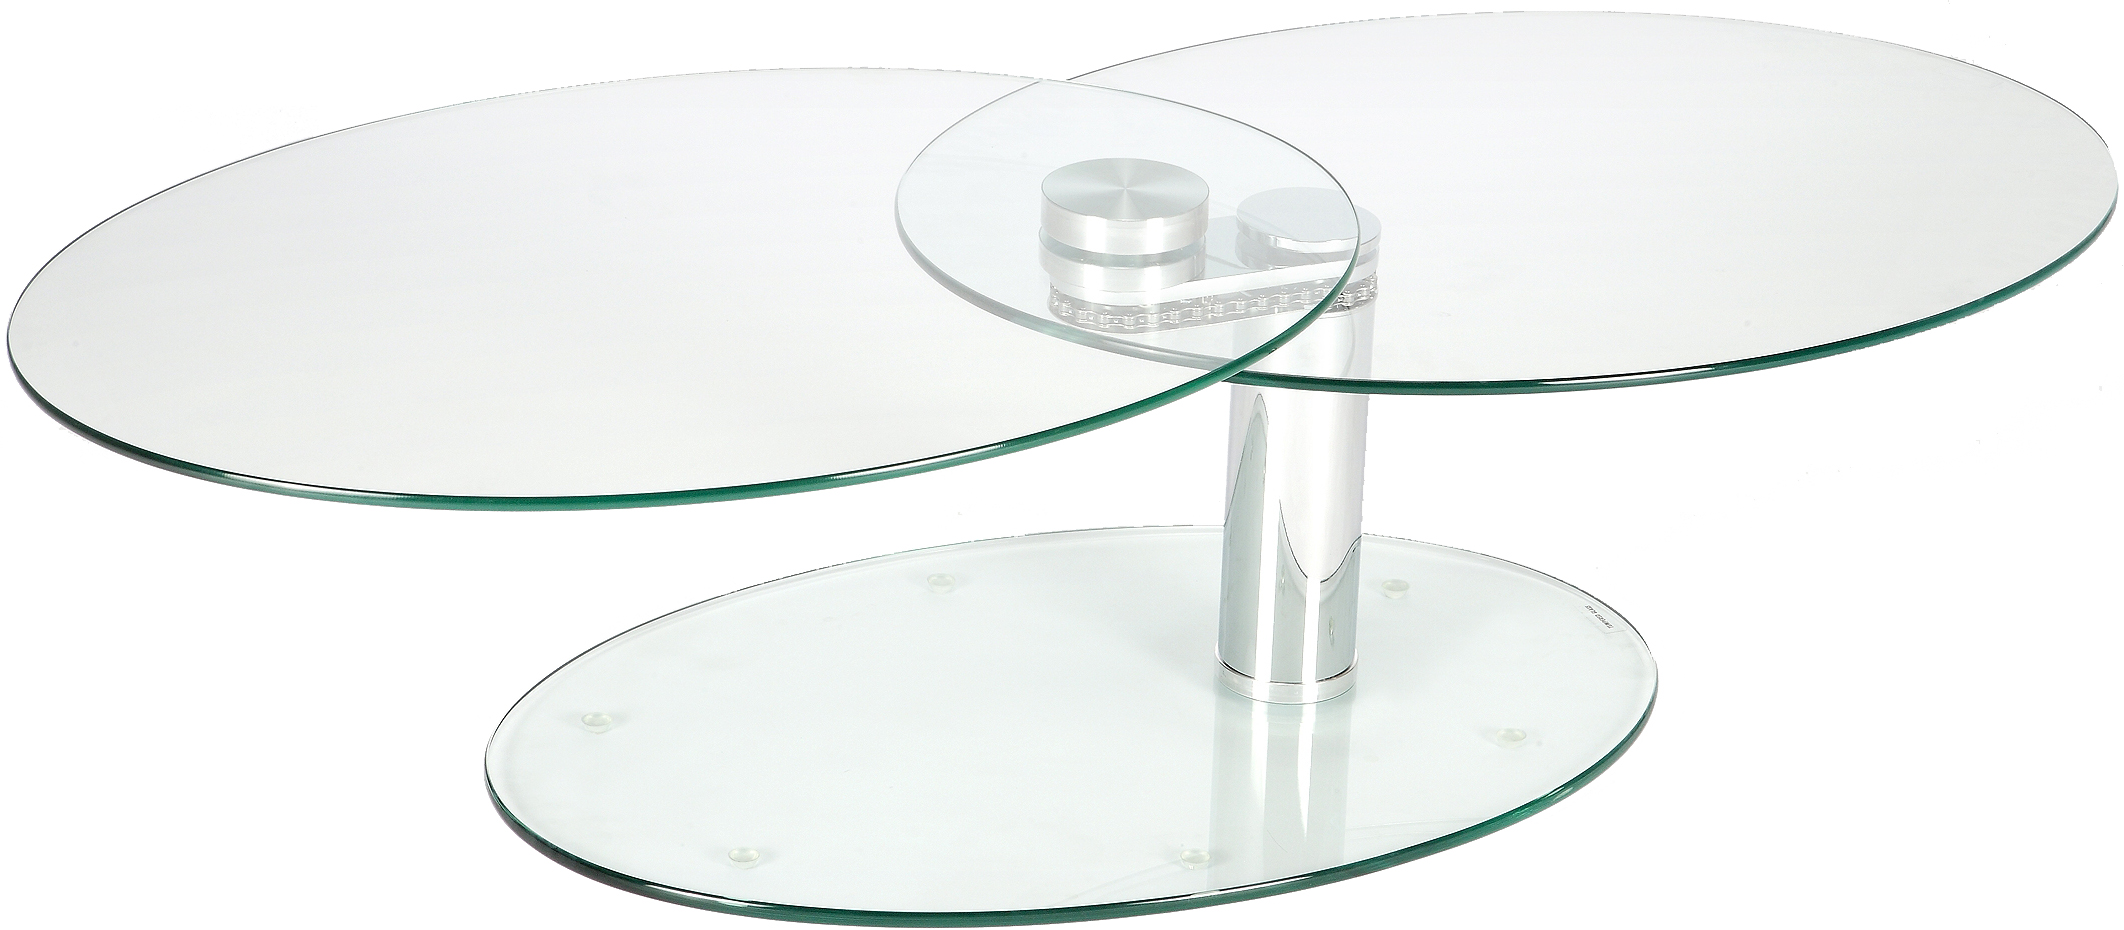 Table basse verre ovale articulee - Table basse ovale en verre ...